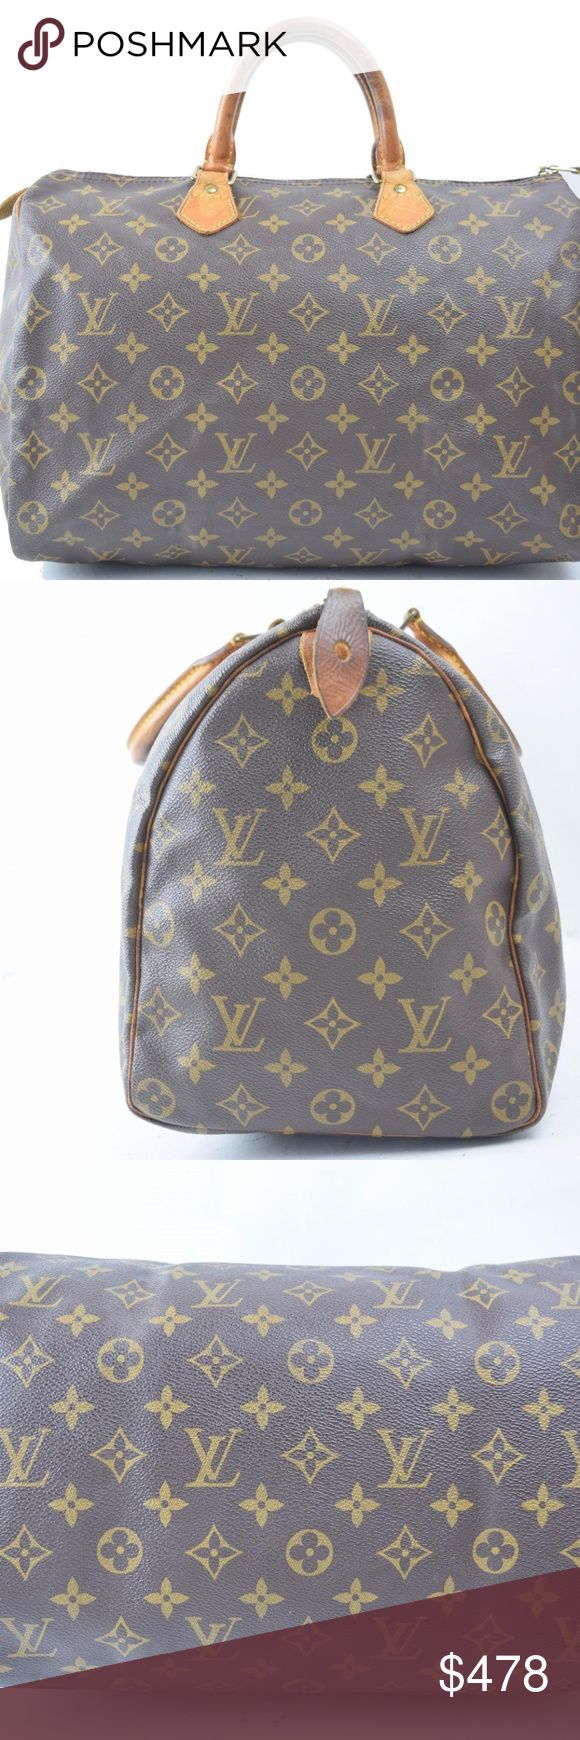 Louis Vuitton Speedy 35 Monogram Handbag 10765 Outside: Minor rubs and cracks on the leather parts. Minor stains partially.  Handle: Minor rubs and cracks on a part of handle.  Bottom: Minor rubs on the edge of the bottom.   Inside: Minor rubs on the whole parts. Minor cracks on the upper parts. Minor stains partially.  Zipper works properly.  Metal: Minor scuffed mark on the almost all of metal parts.  Height: 9.05 Width: 13.7 Depth: 7.08 Handle: 10.63  Code: SP1915   Ref: 10765 Louis…